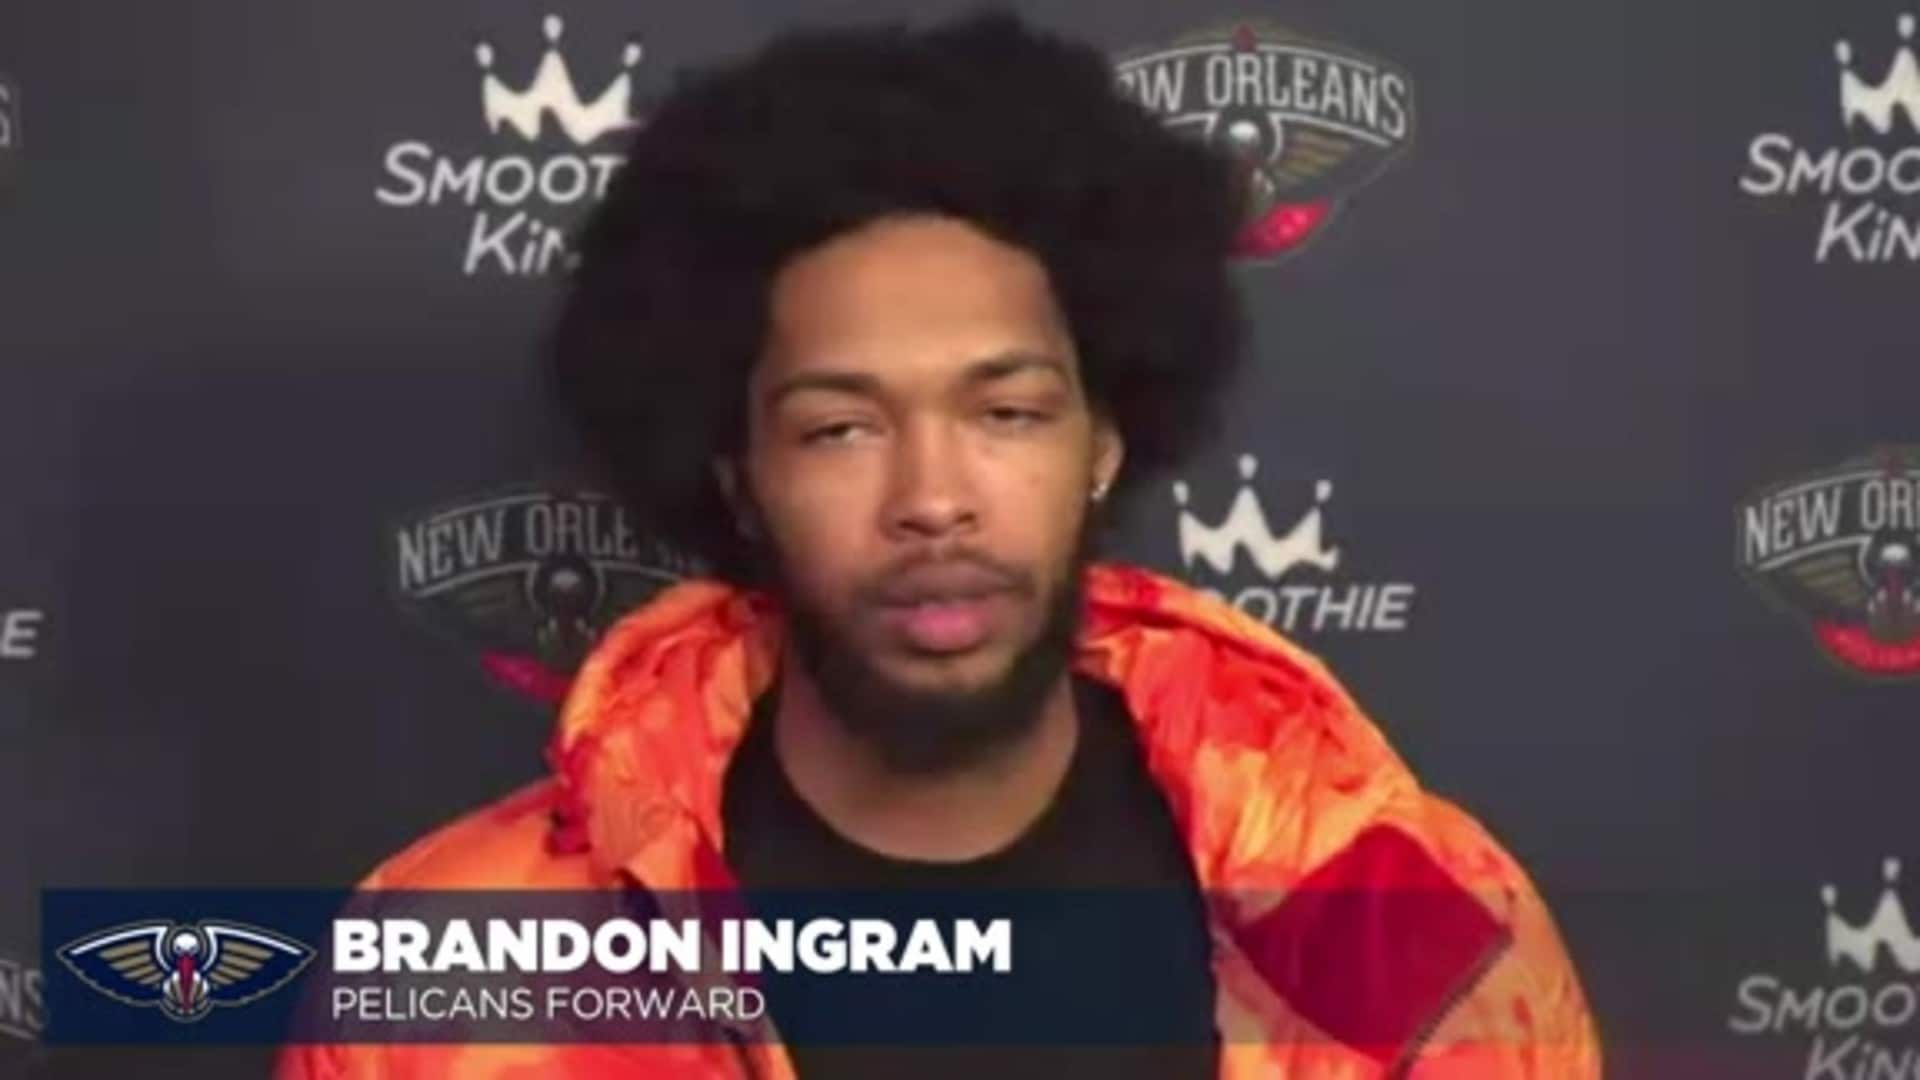 Brandon Ingram talks preparation ahead of the 2020-21 NBA season